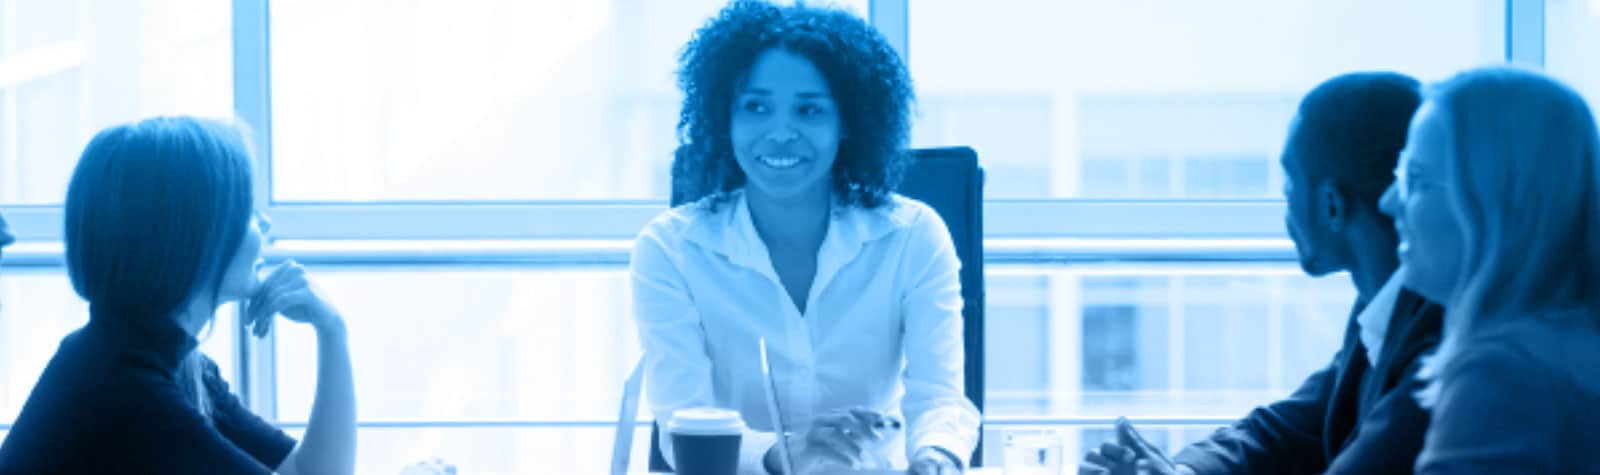 Achieving racial inclusion in the workplace